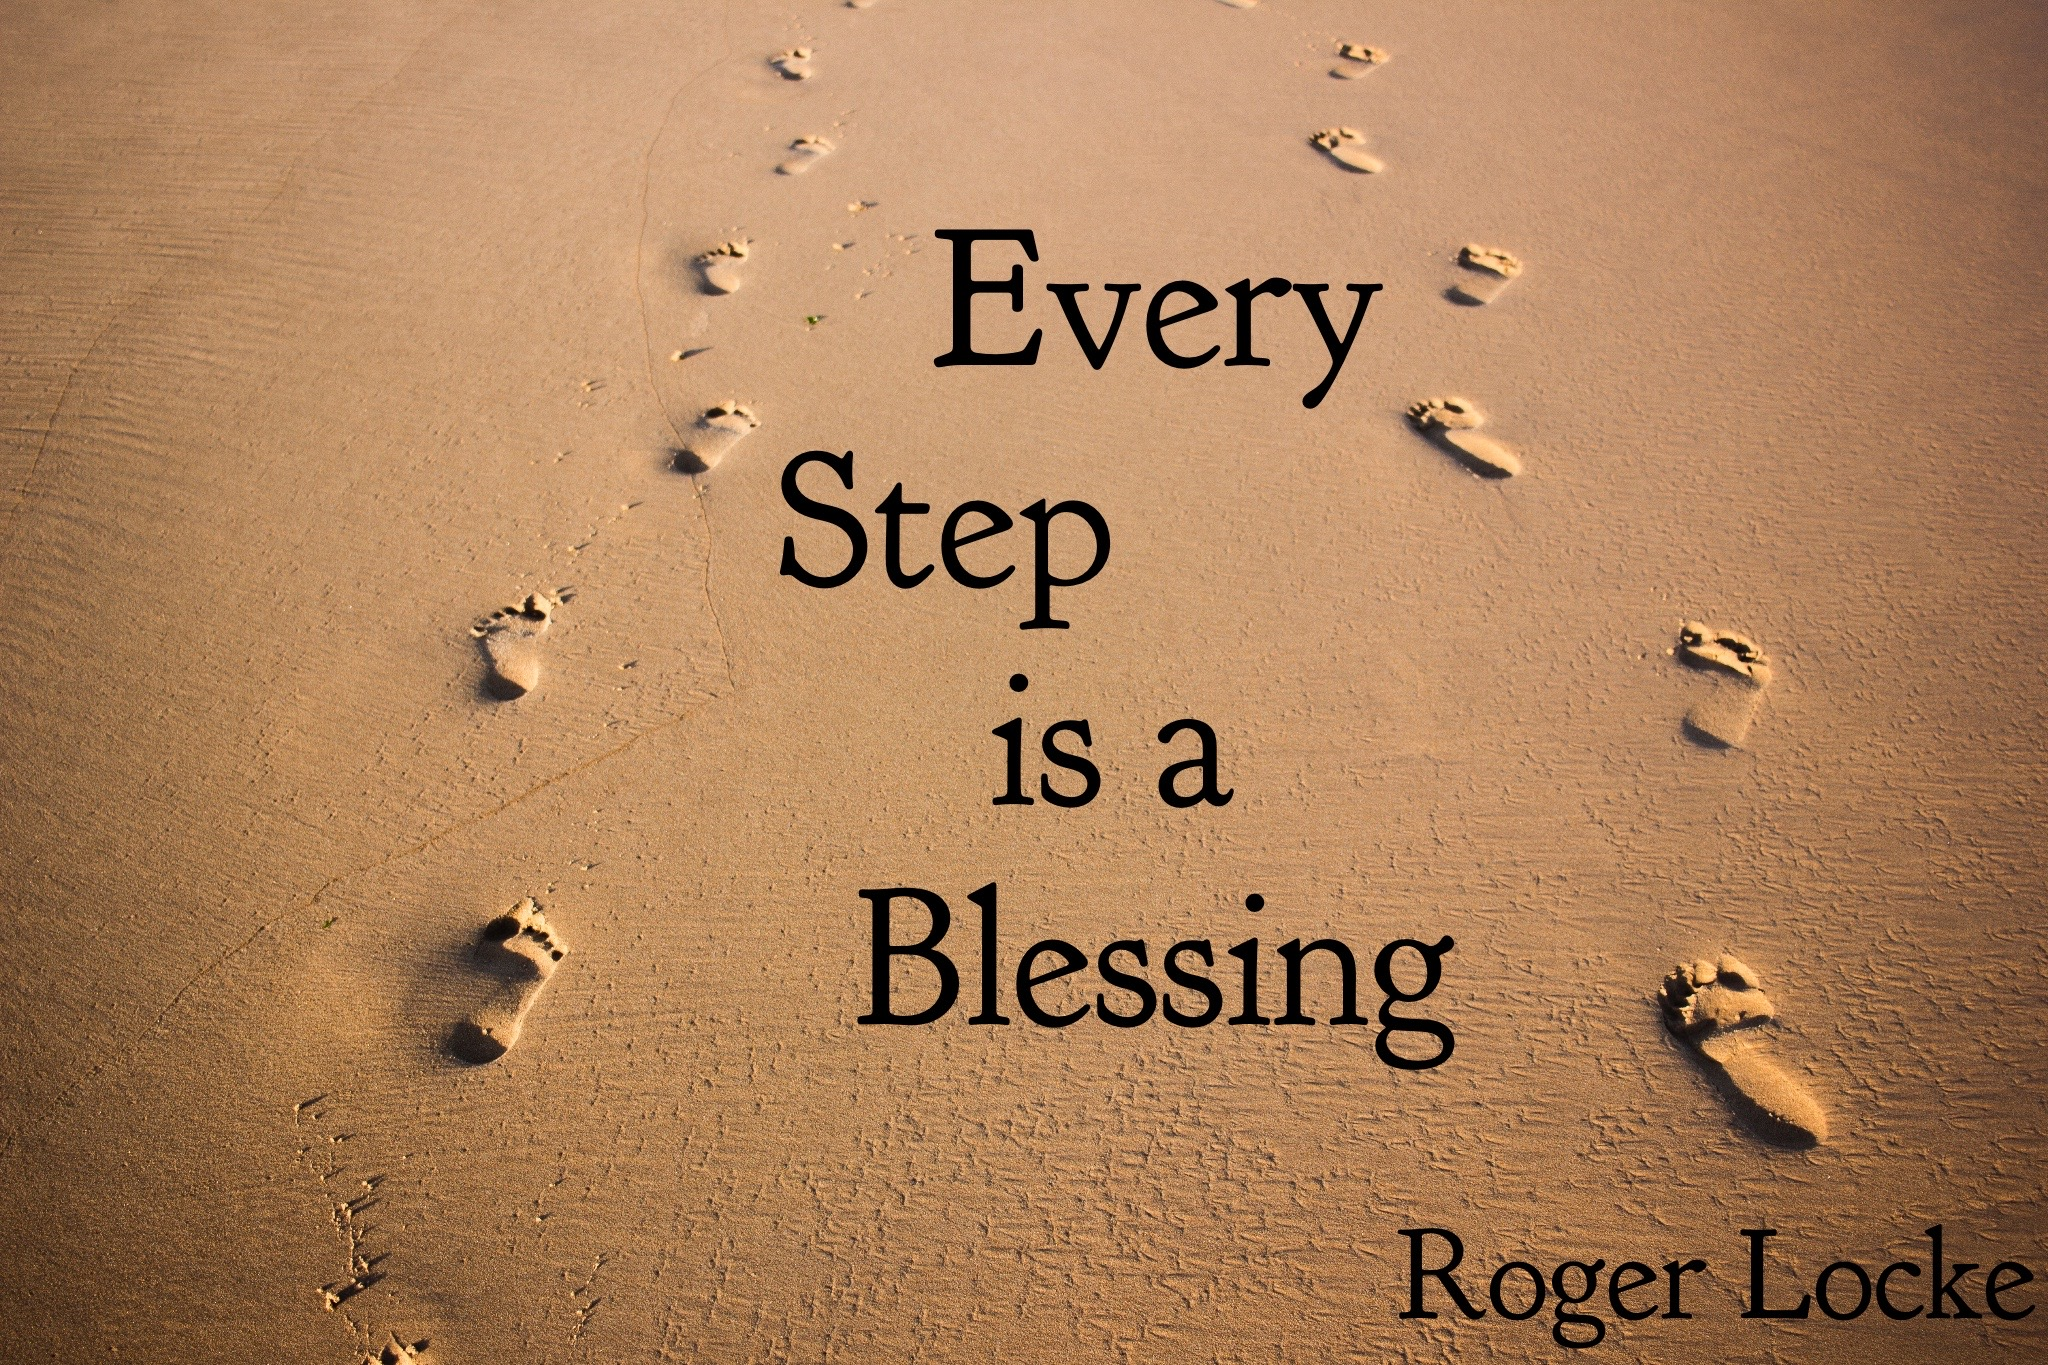 Every Step is a Blessing